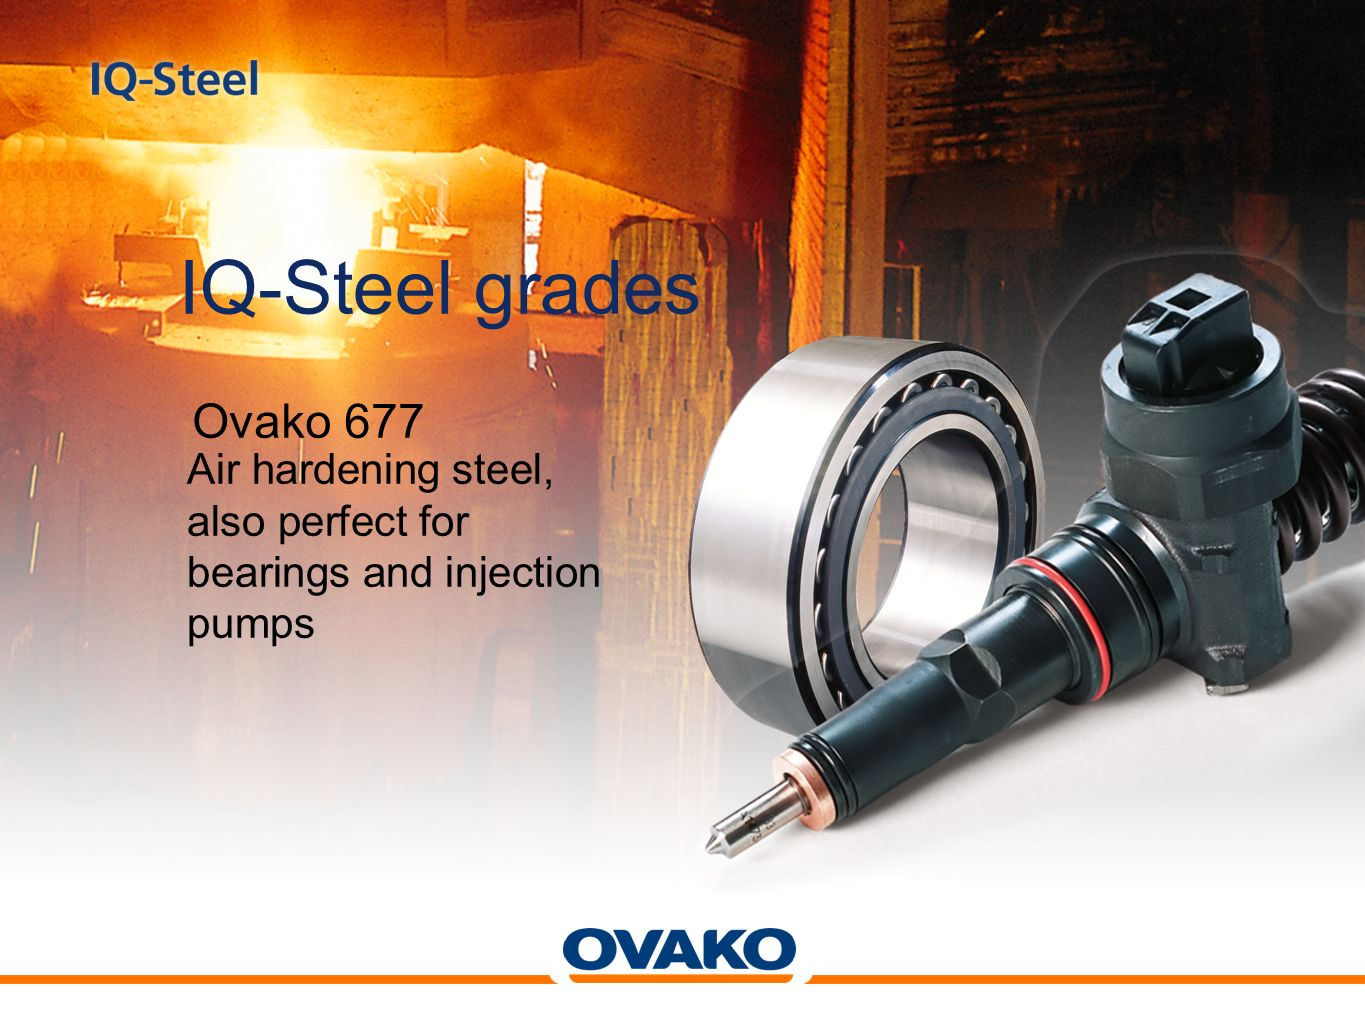 IQ-Steel grades Ovako 677 Air hardening steel, also perfect for bearings and injection pumps